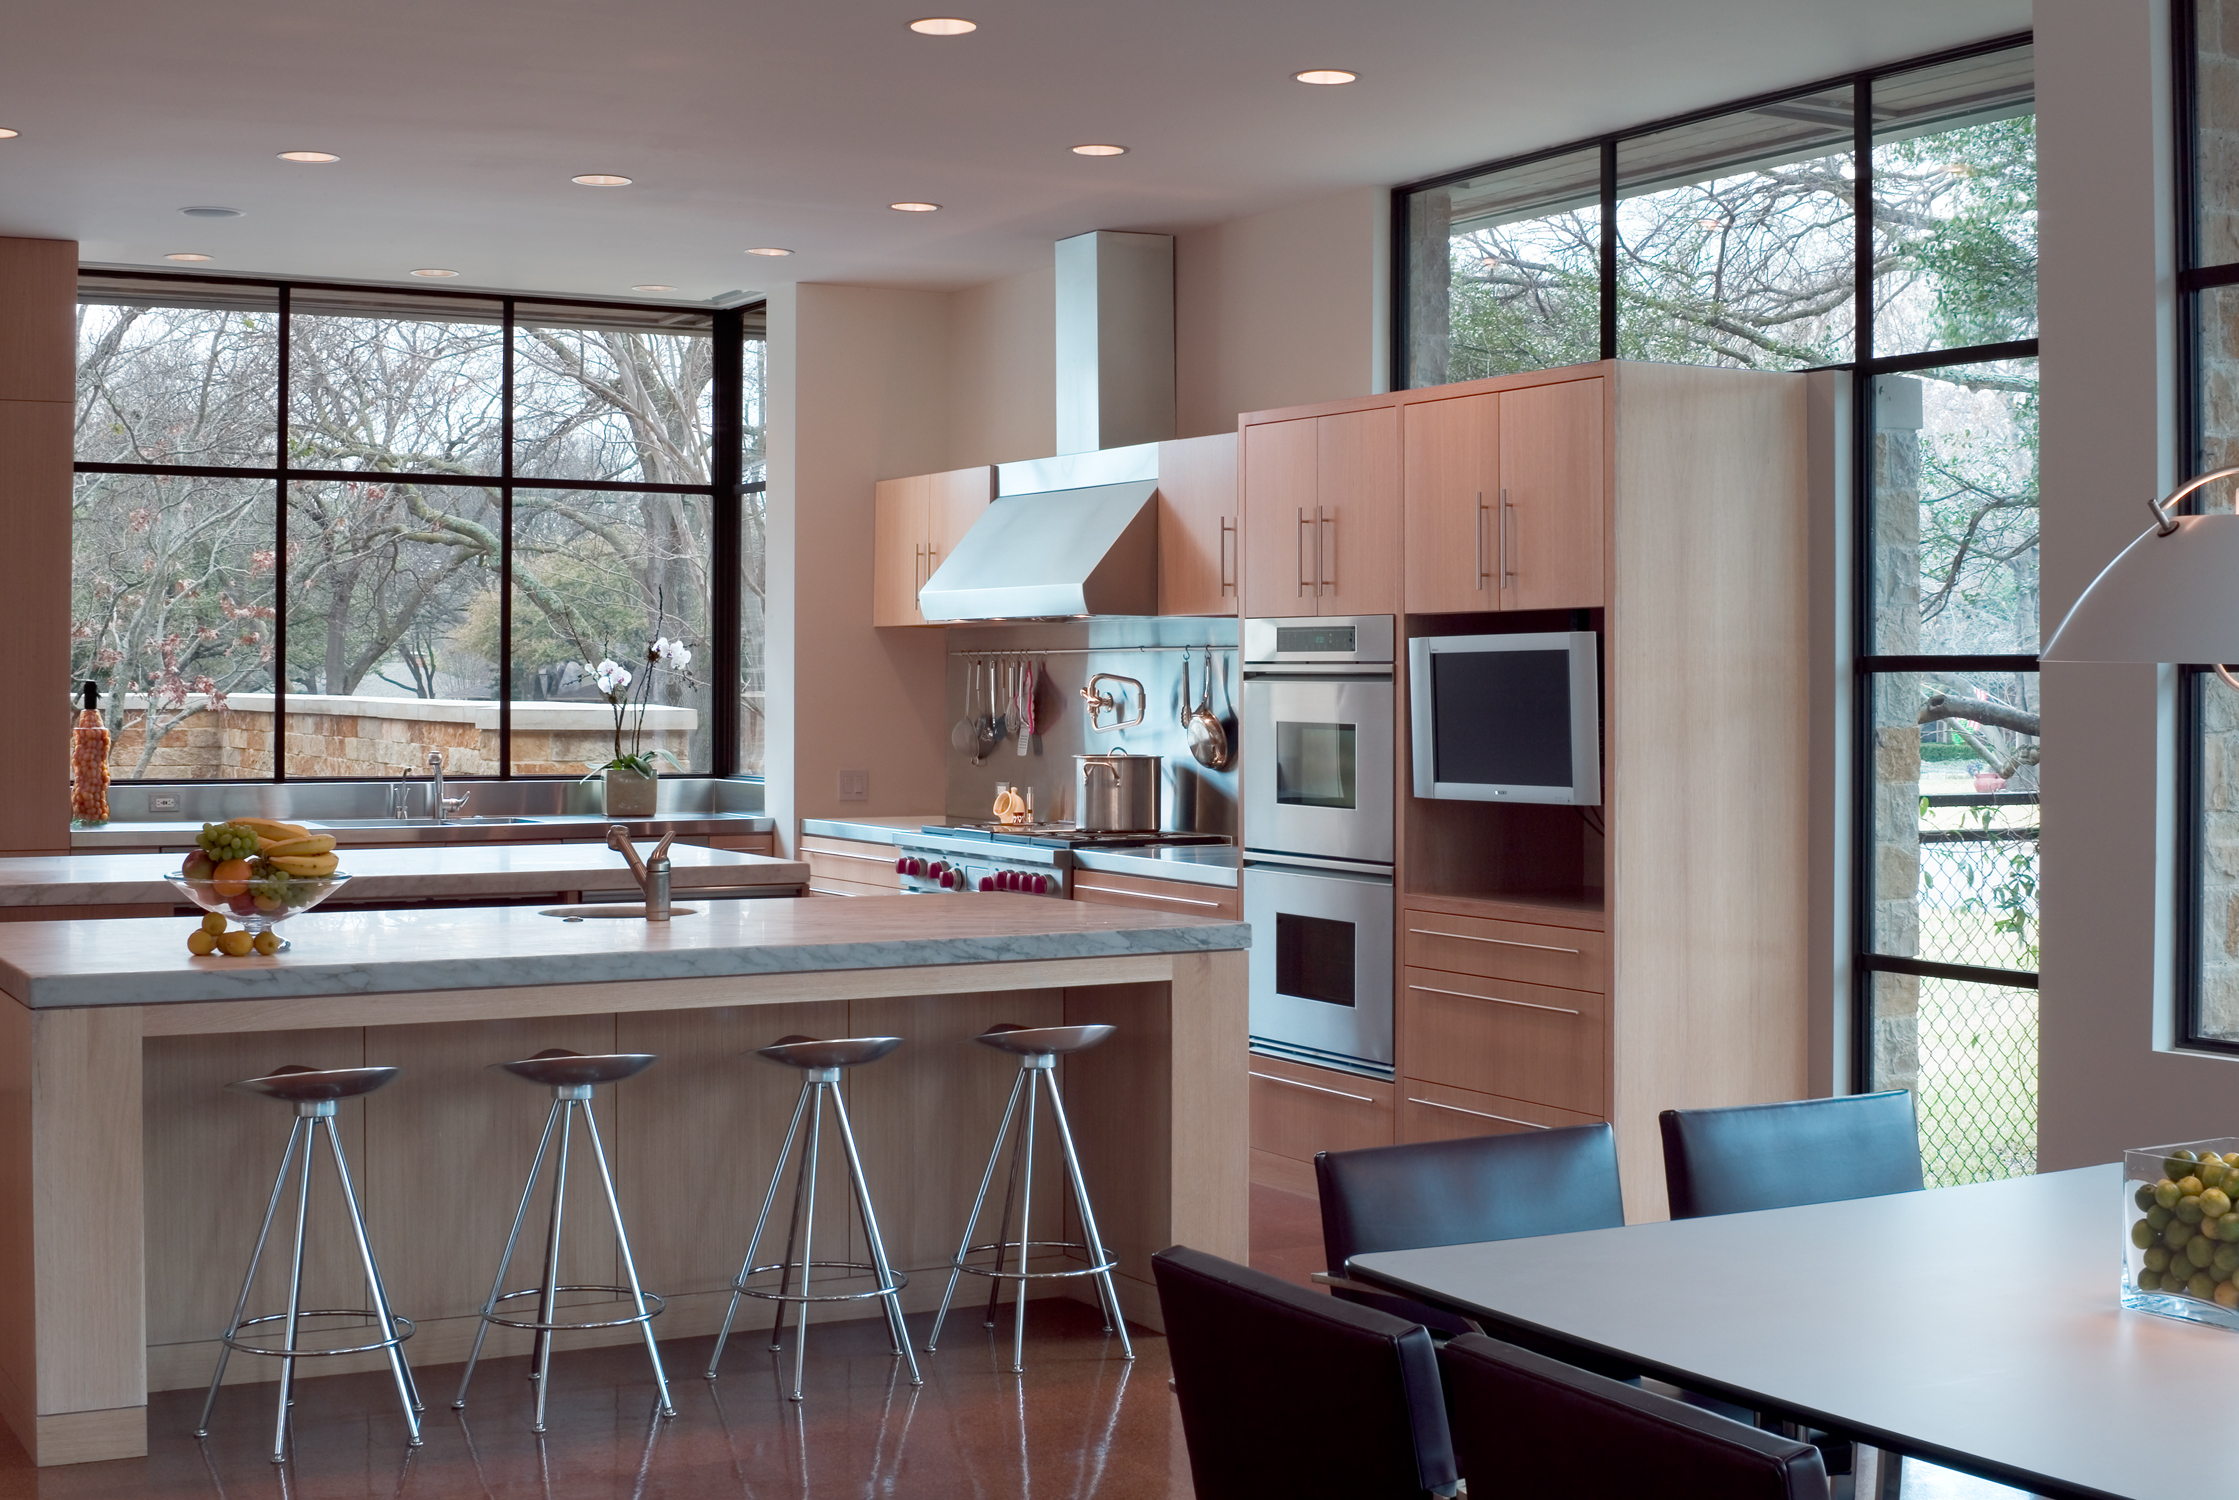 Top 10 modern kitchen design trends life of an architect for Casual kitchen design ideas